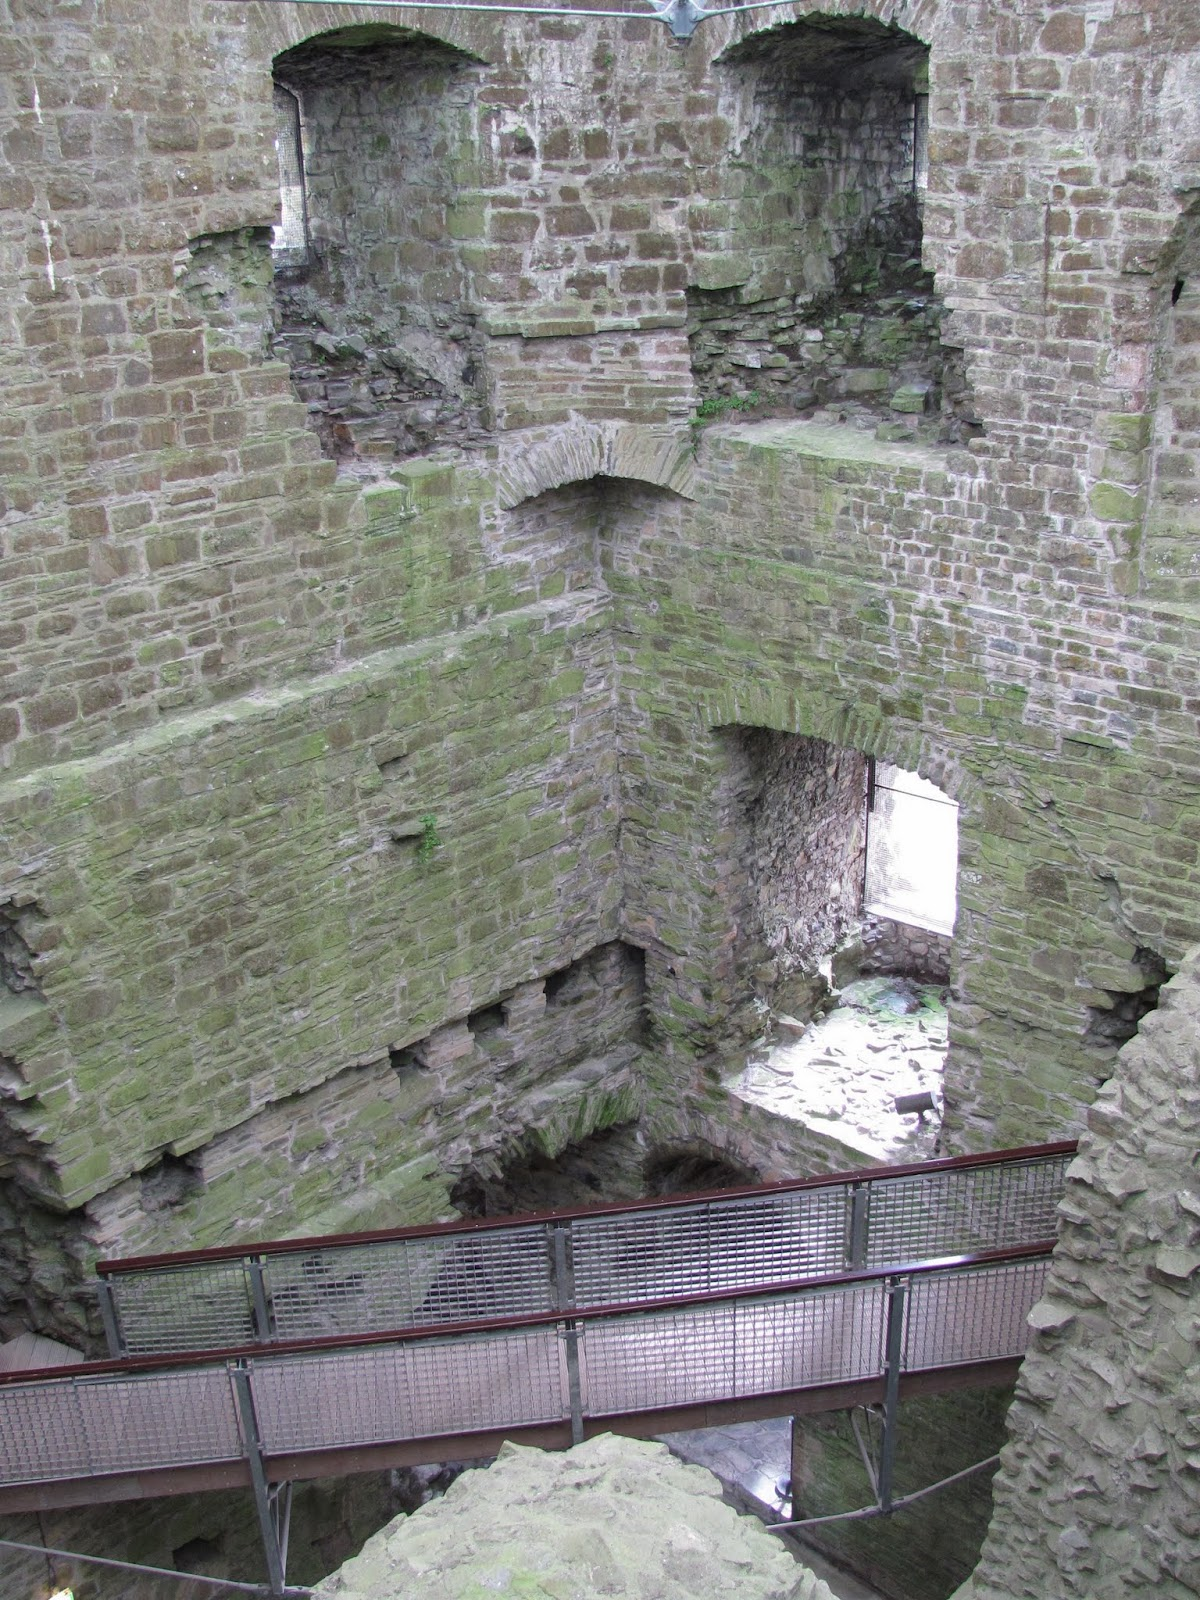 Trim Castle keep central structure, Trim, Ireland